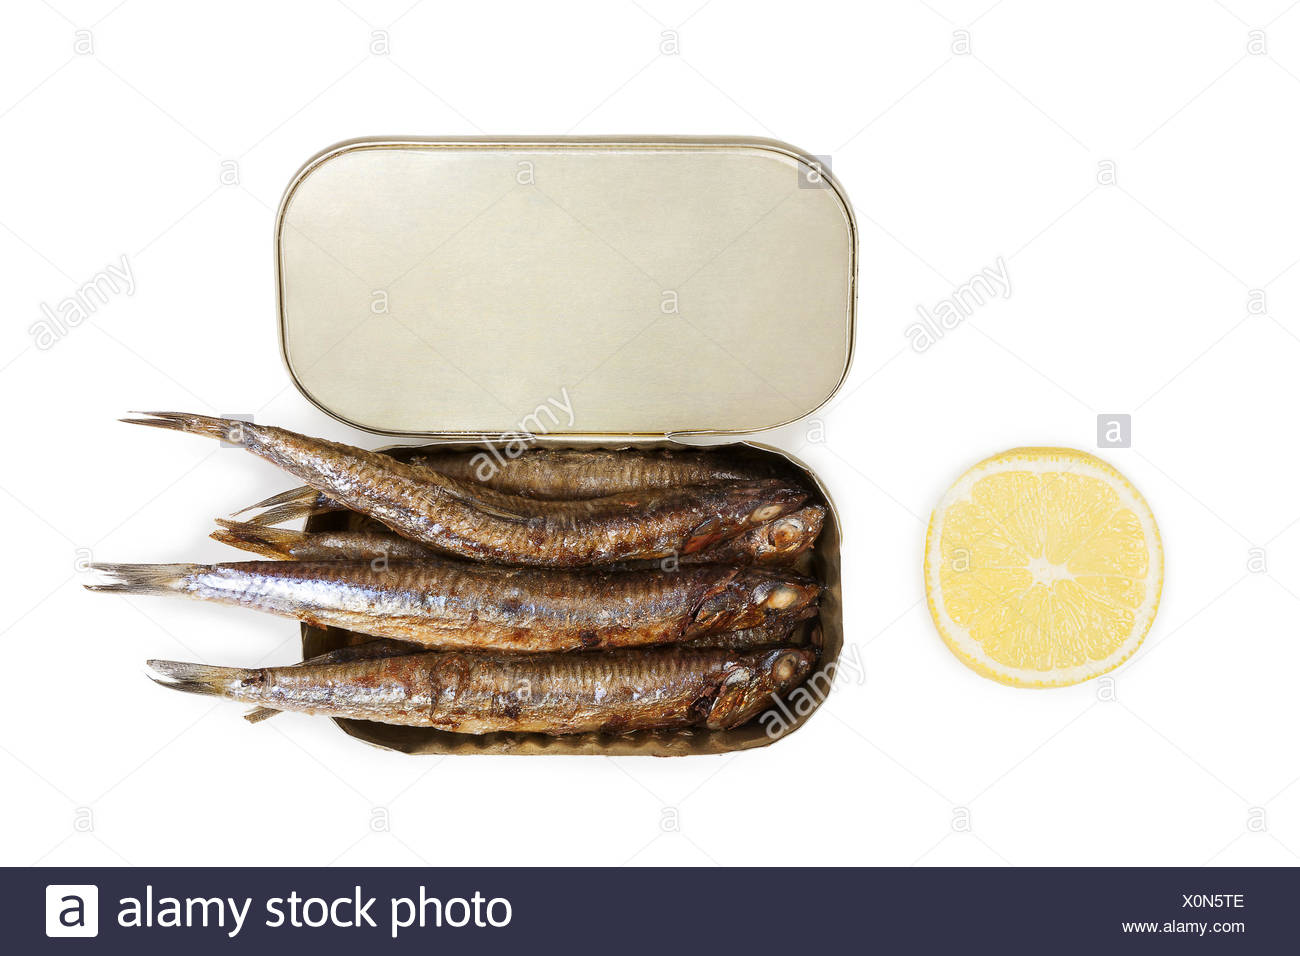 Canned sardines. - Stock Image